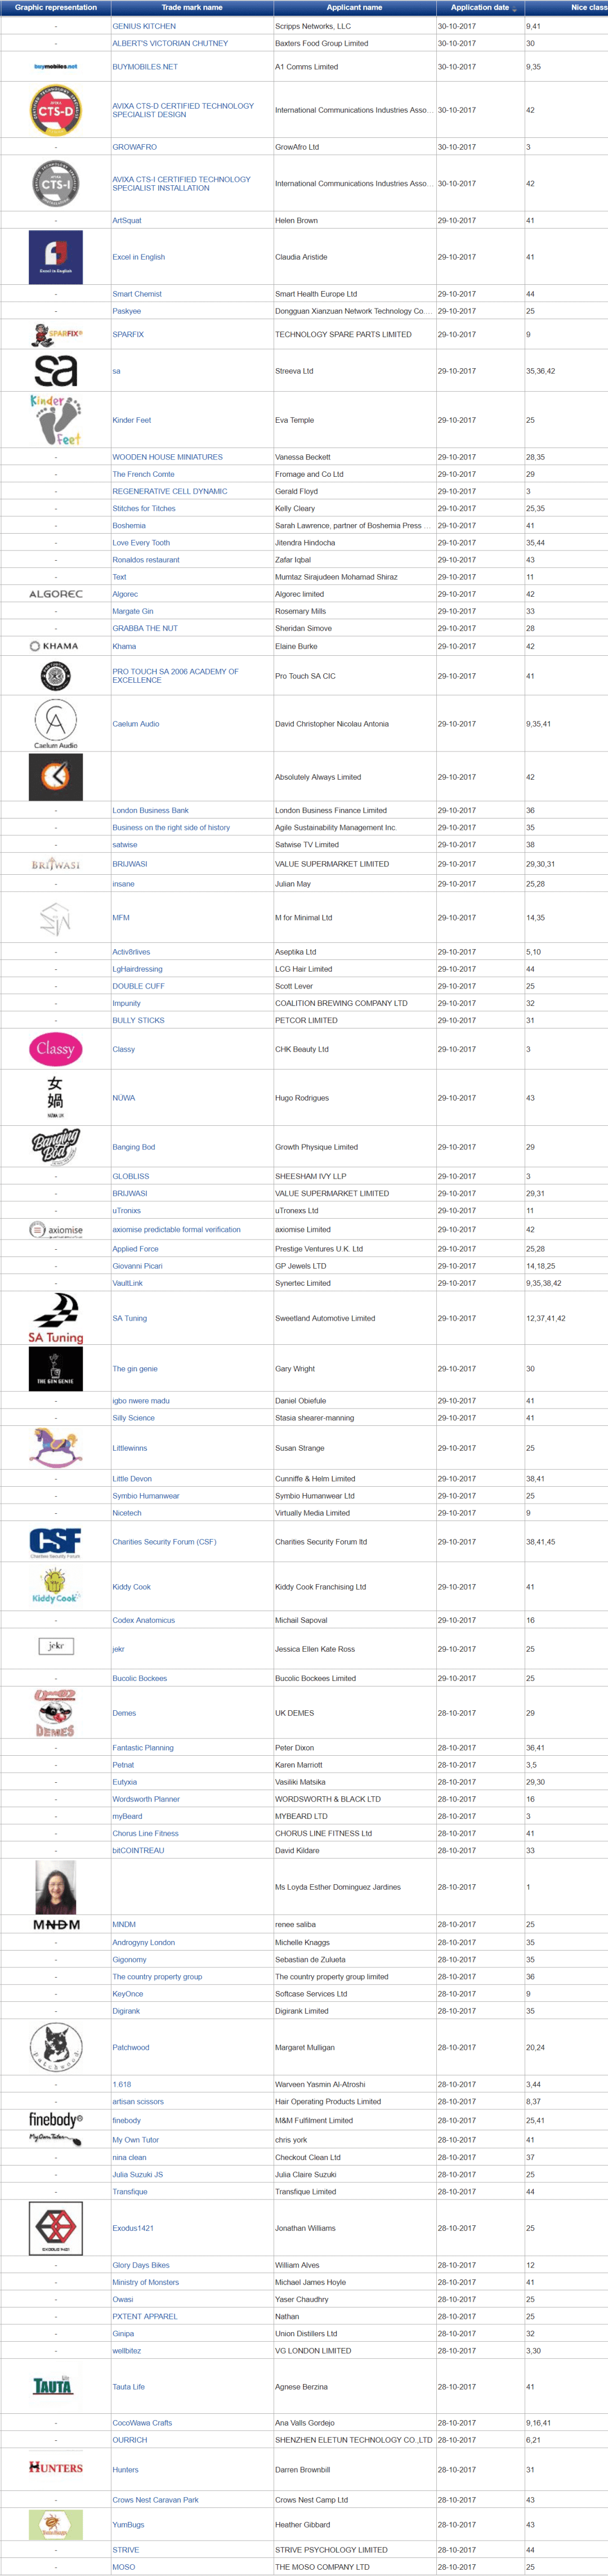 Trademark UK UK Trademark Applications Latest Filings with UK Patents Office 29 October 2017 1 2